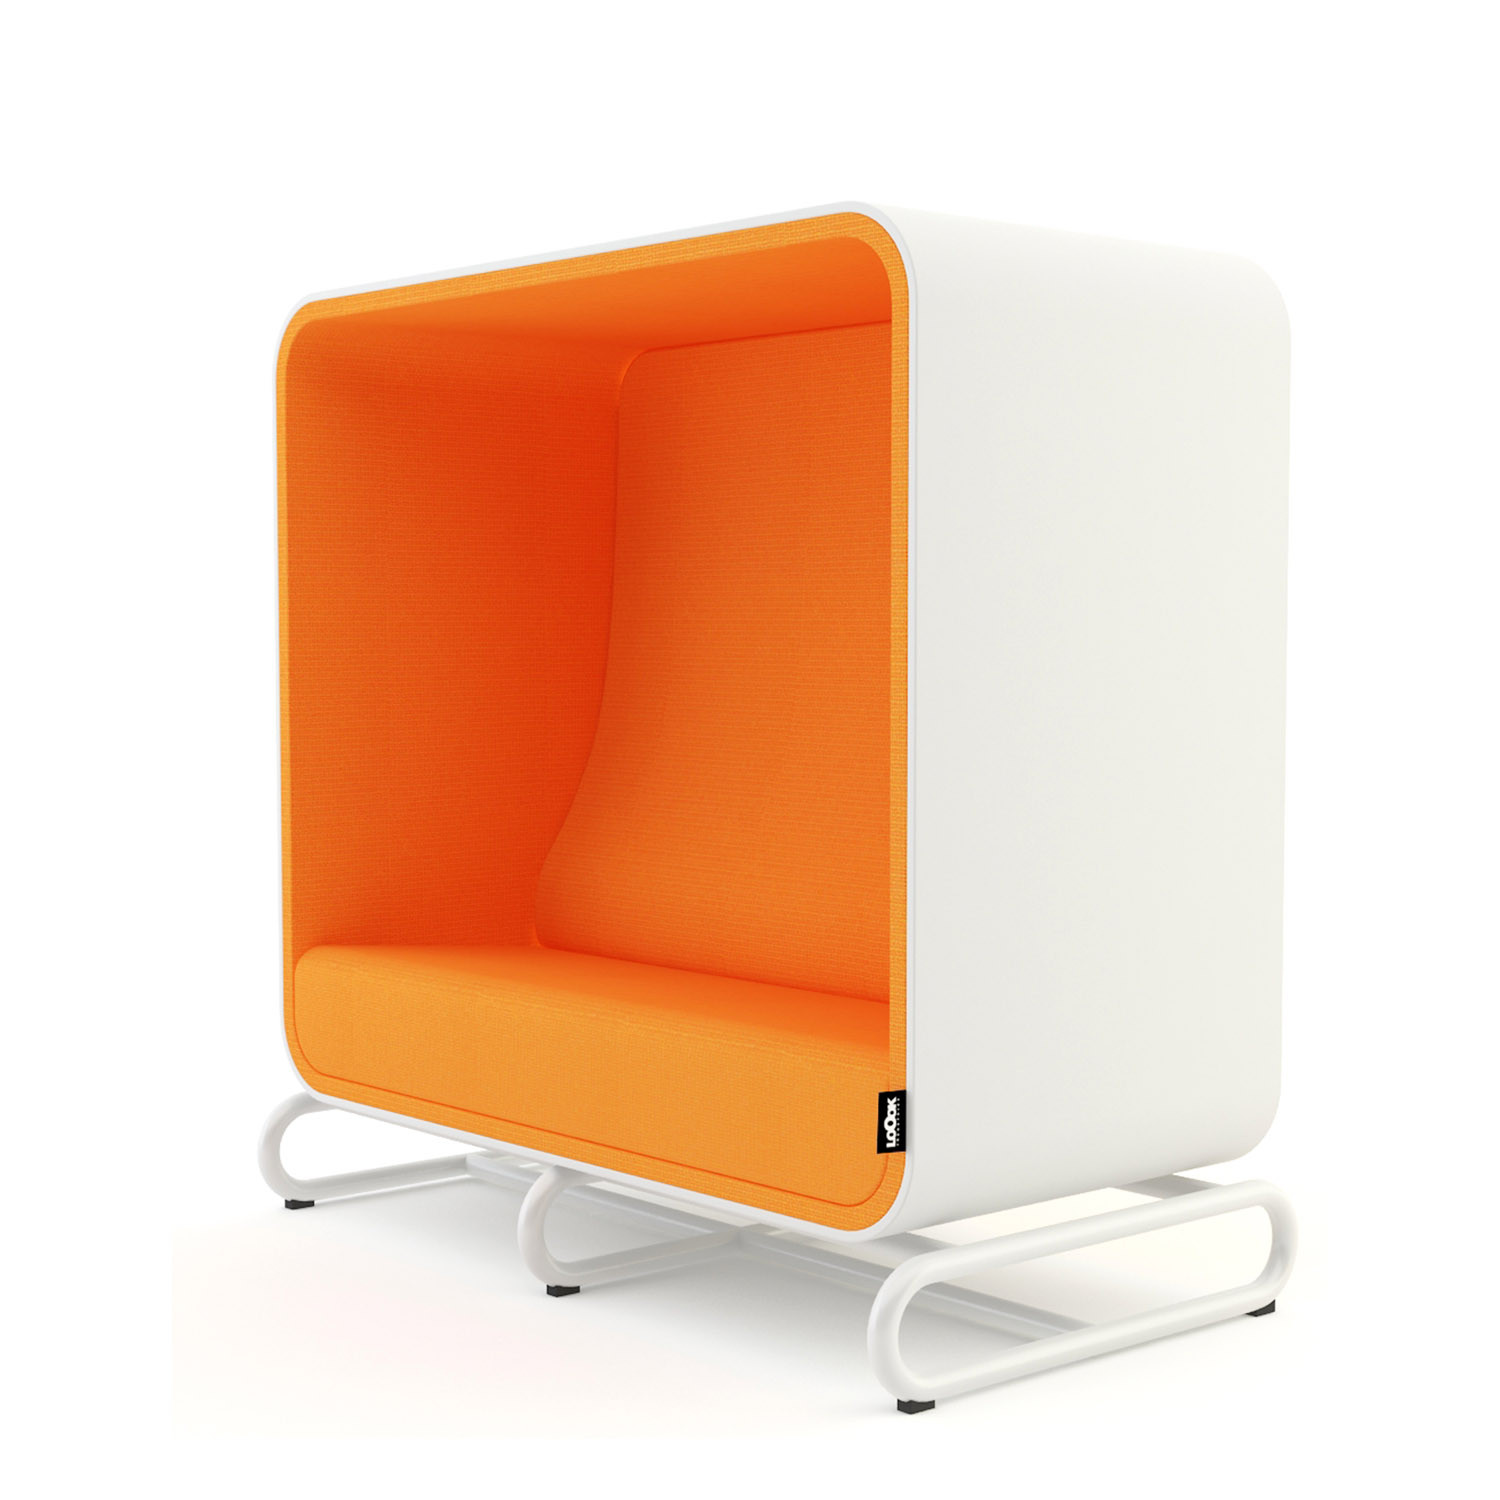 Loook Furniture The Box Sofa Series